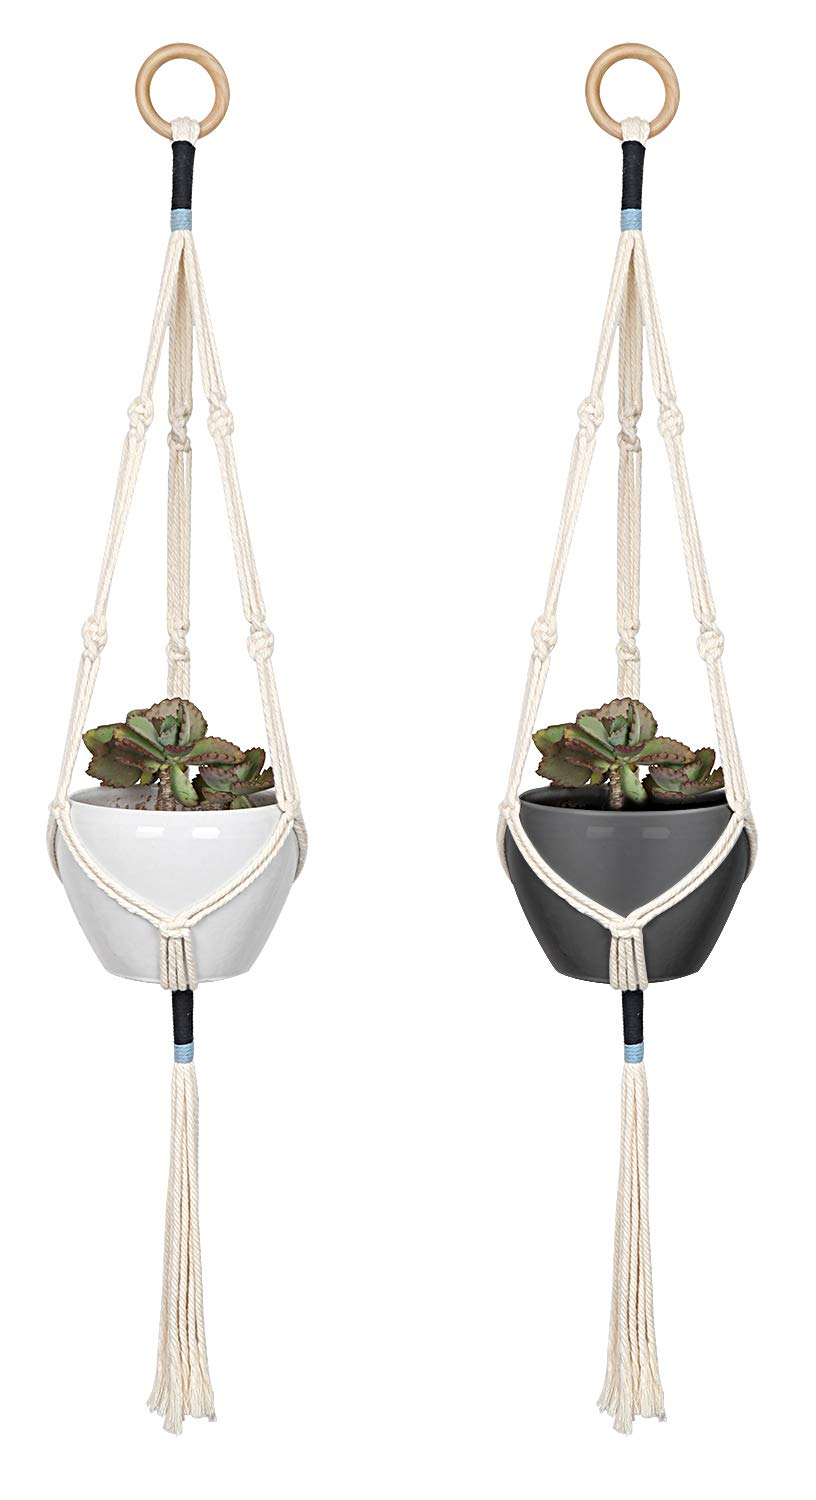 Macrame Plant Hangers - Macrame Plant Hanging Holders - Hanging Planters for Indoor Outdoor Plants Basket Pots Stands Cotton Cord 3 Legs 41 Inch in Length with Blue Details Boho Home Decor, 2Pcs